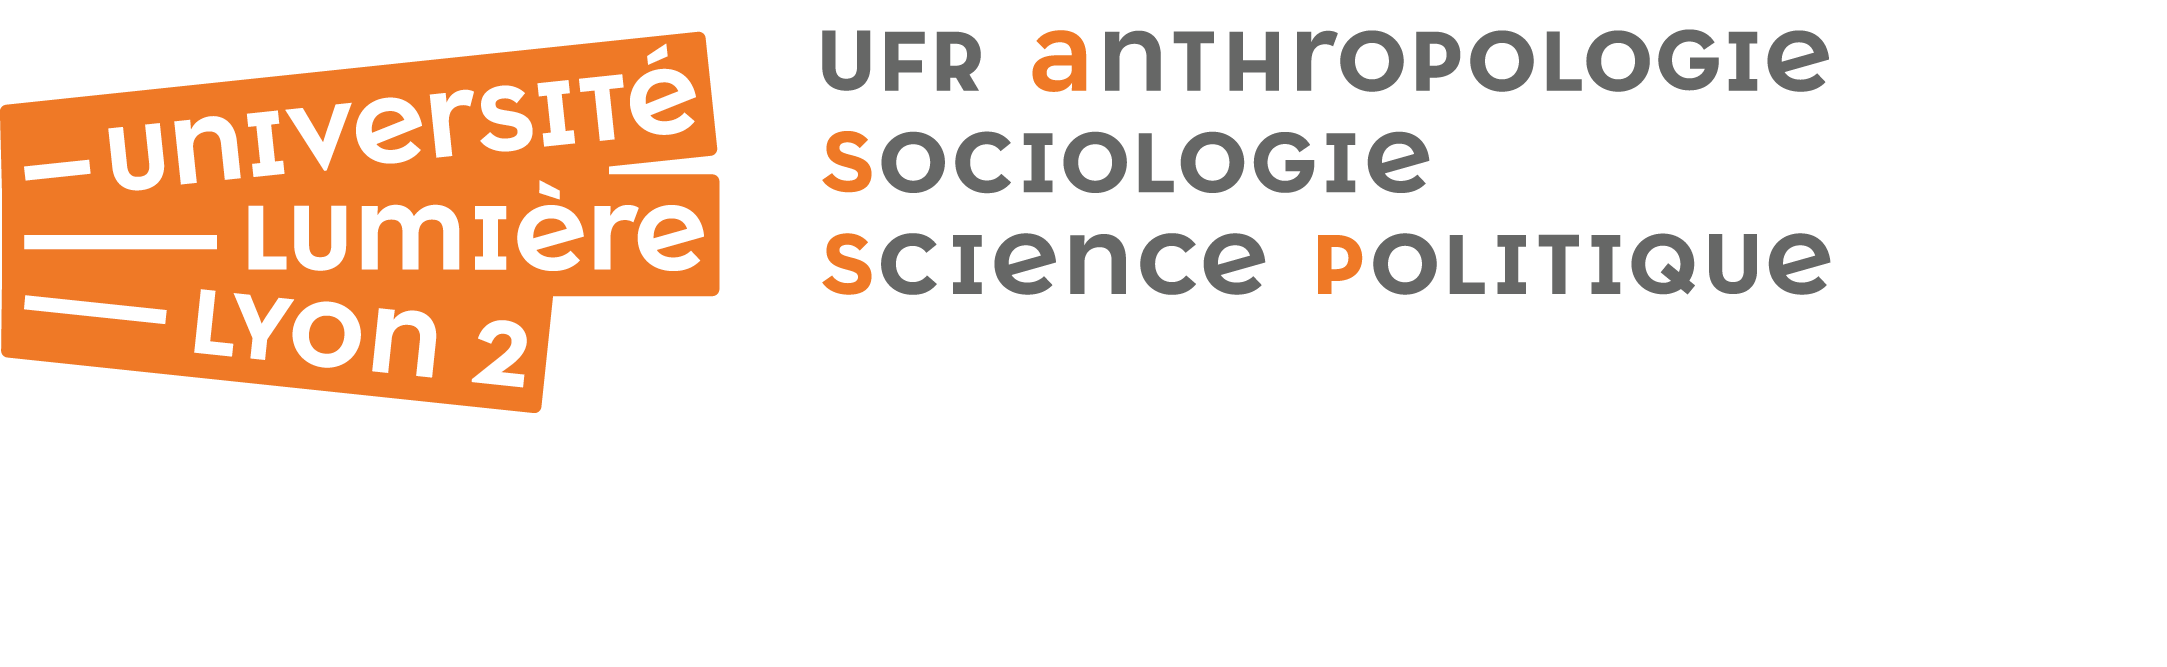 UFR Anthropologie, Sociologie et Science politique